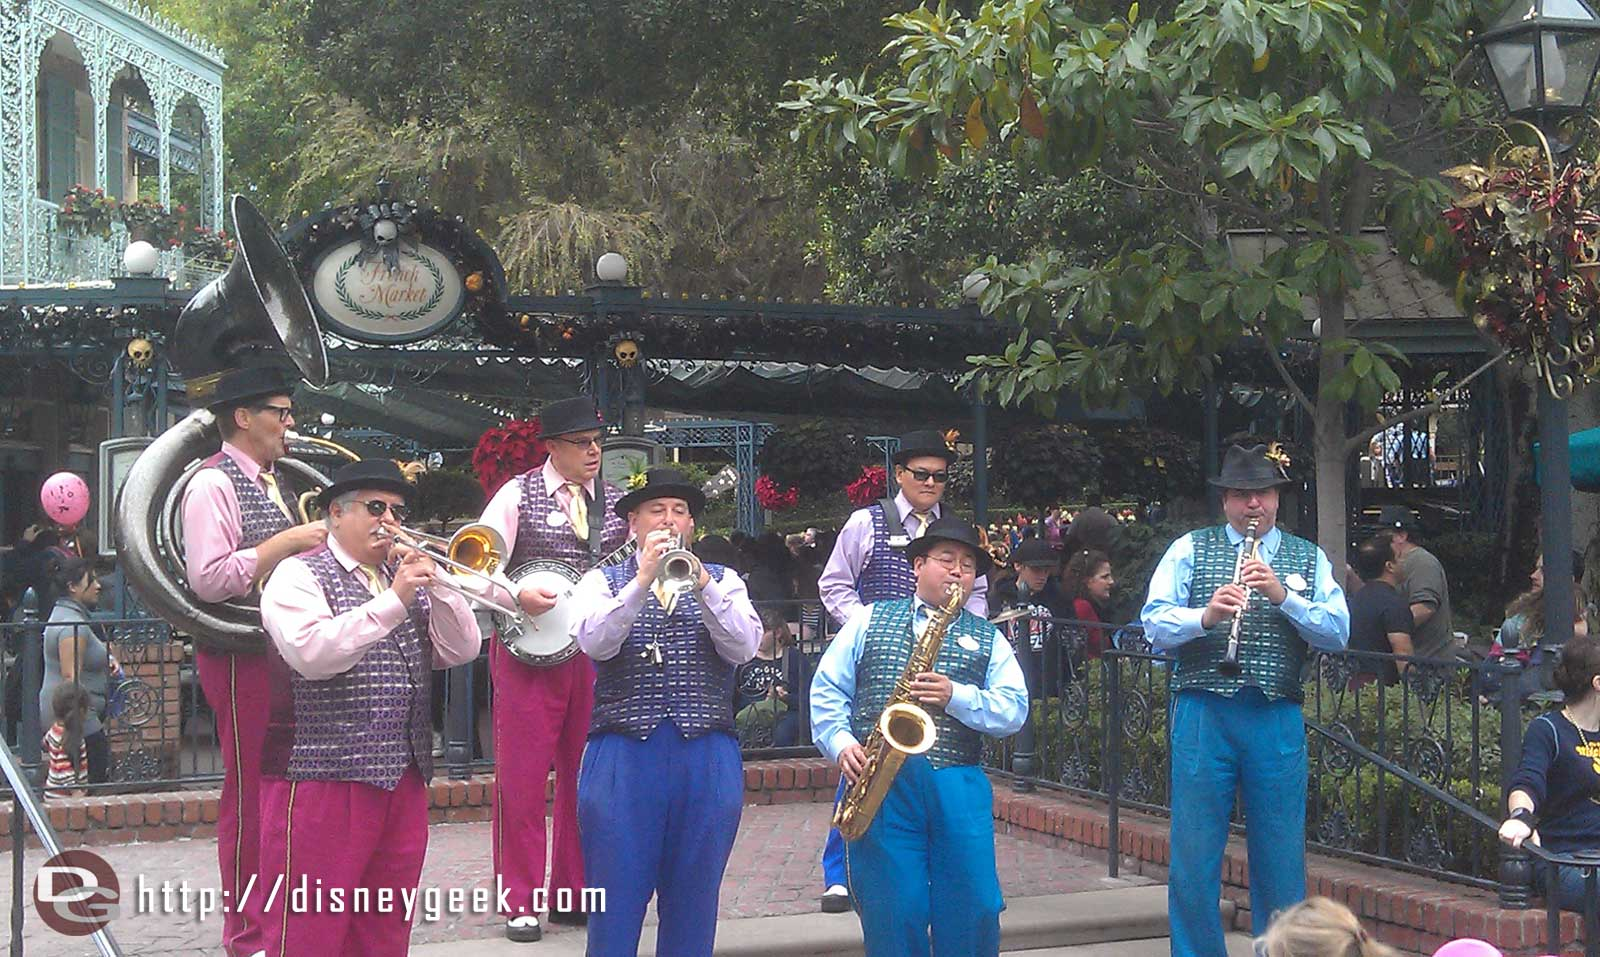 The Jambalaya Jazz entertaining the crowd in New Orleans Square